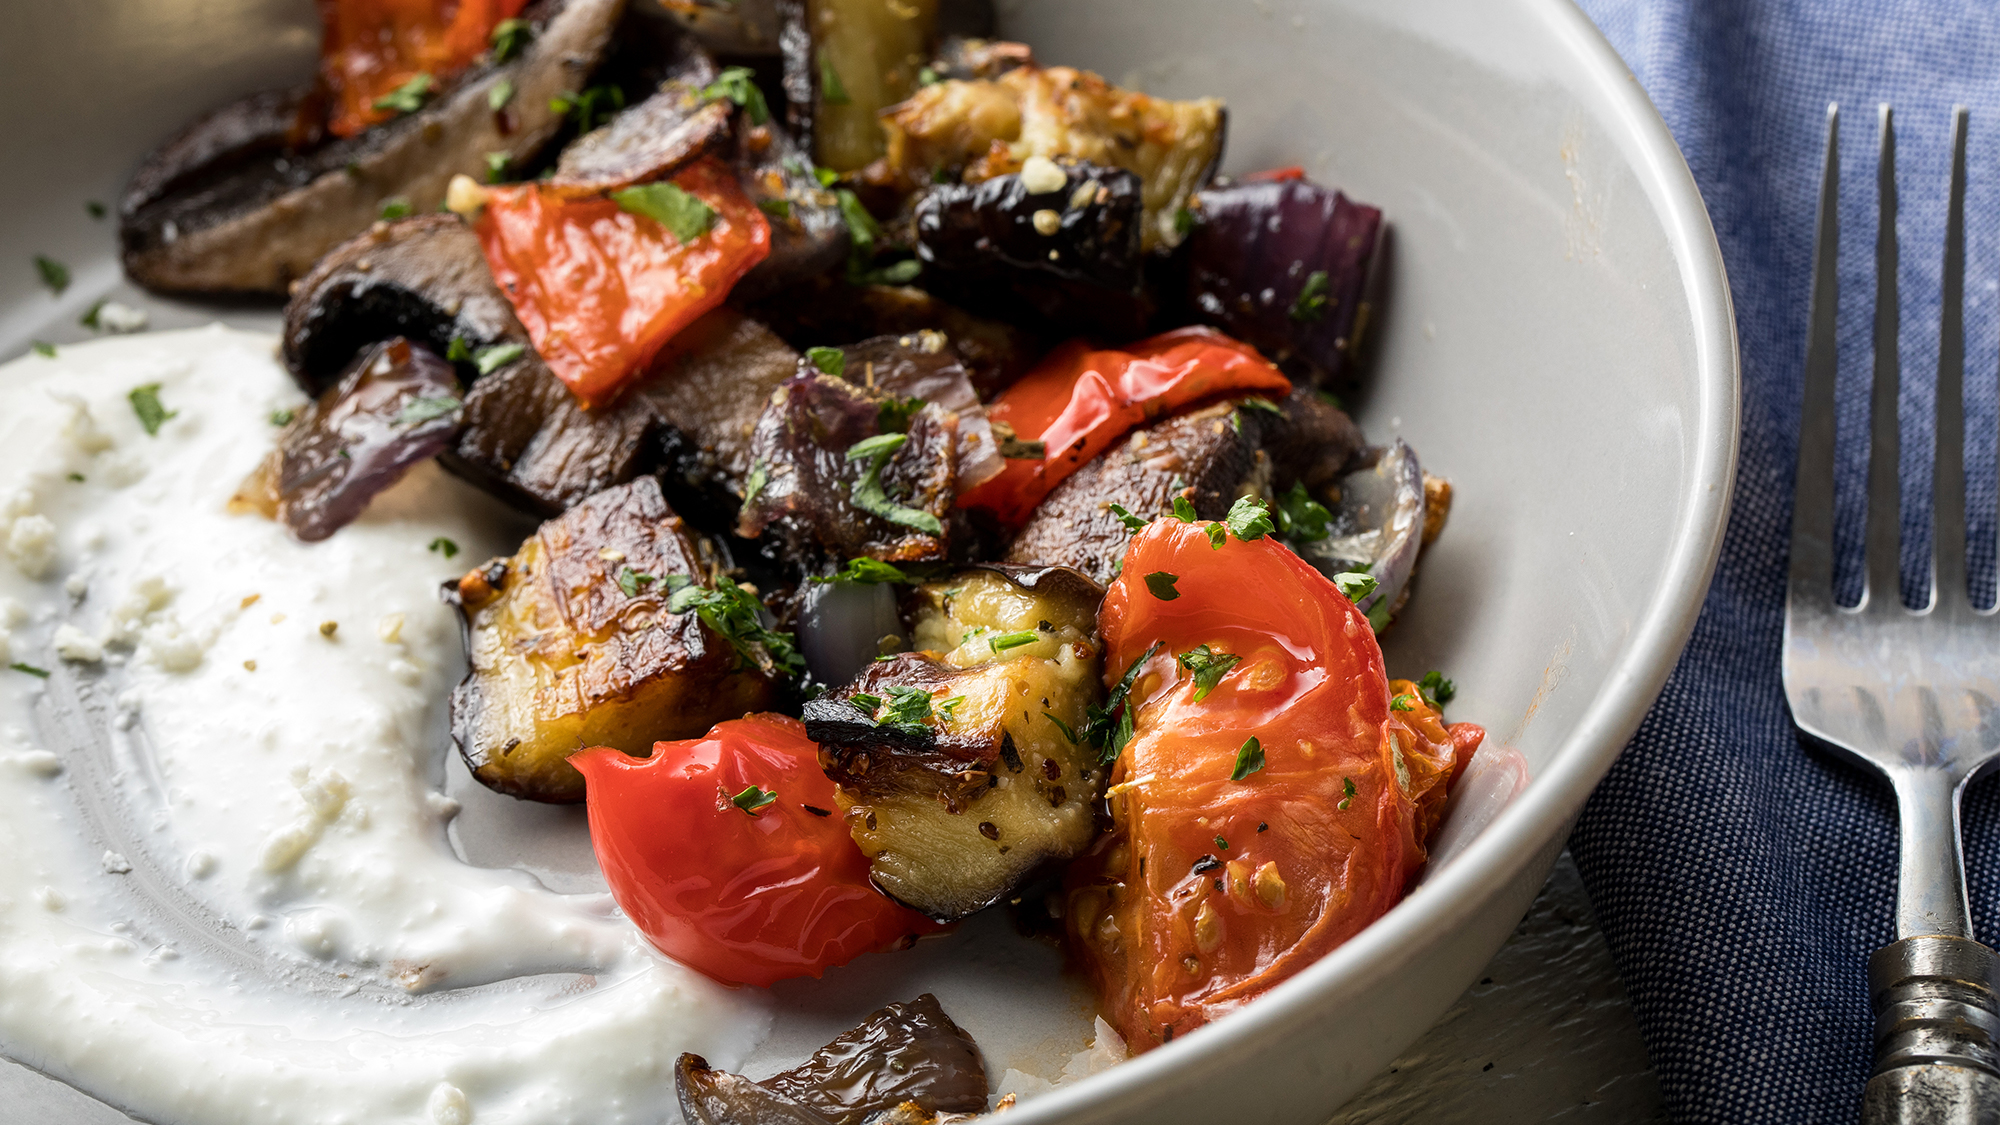 McCormick Gourmet Roasted Vegetables with Creamy Whipped Feta